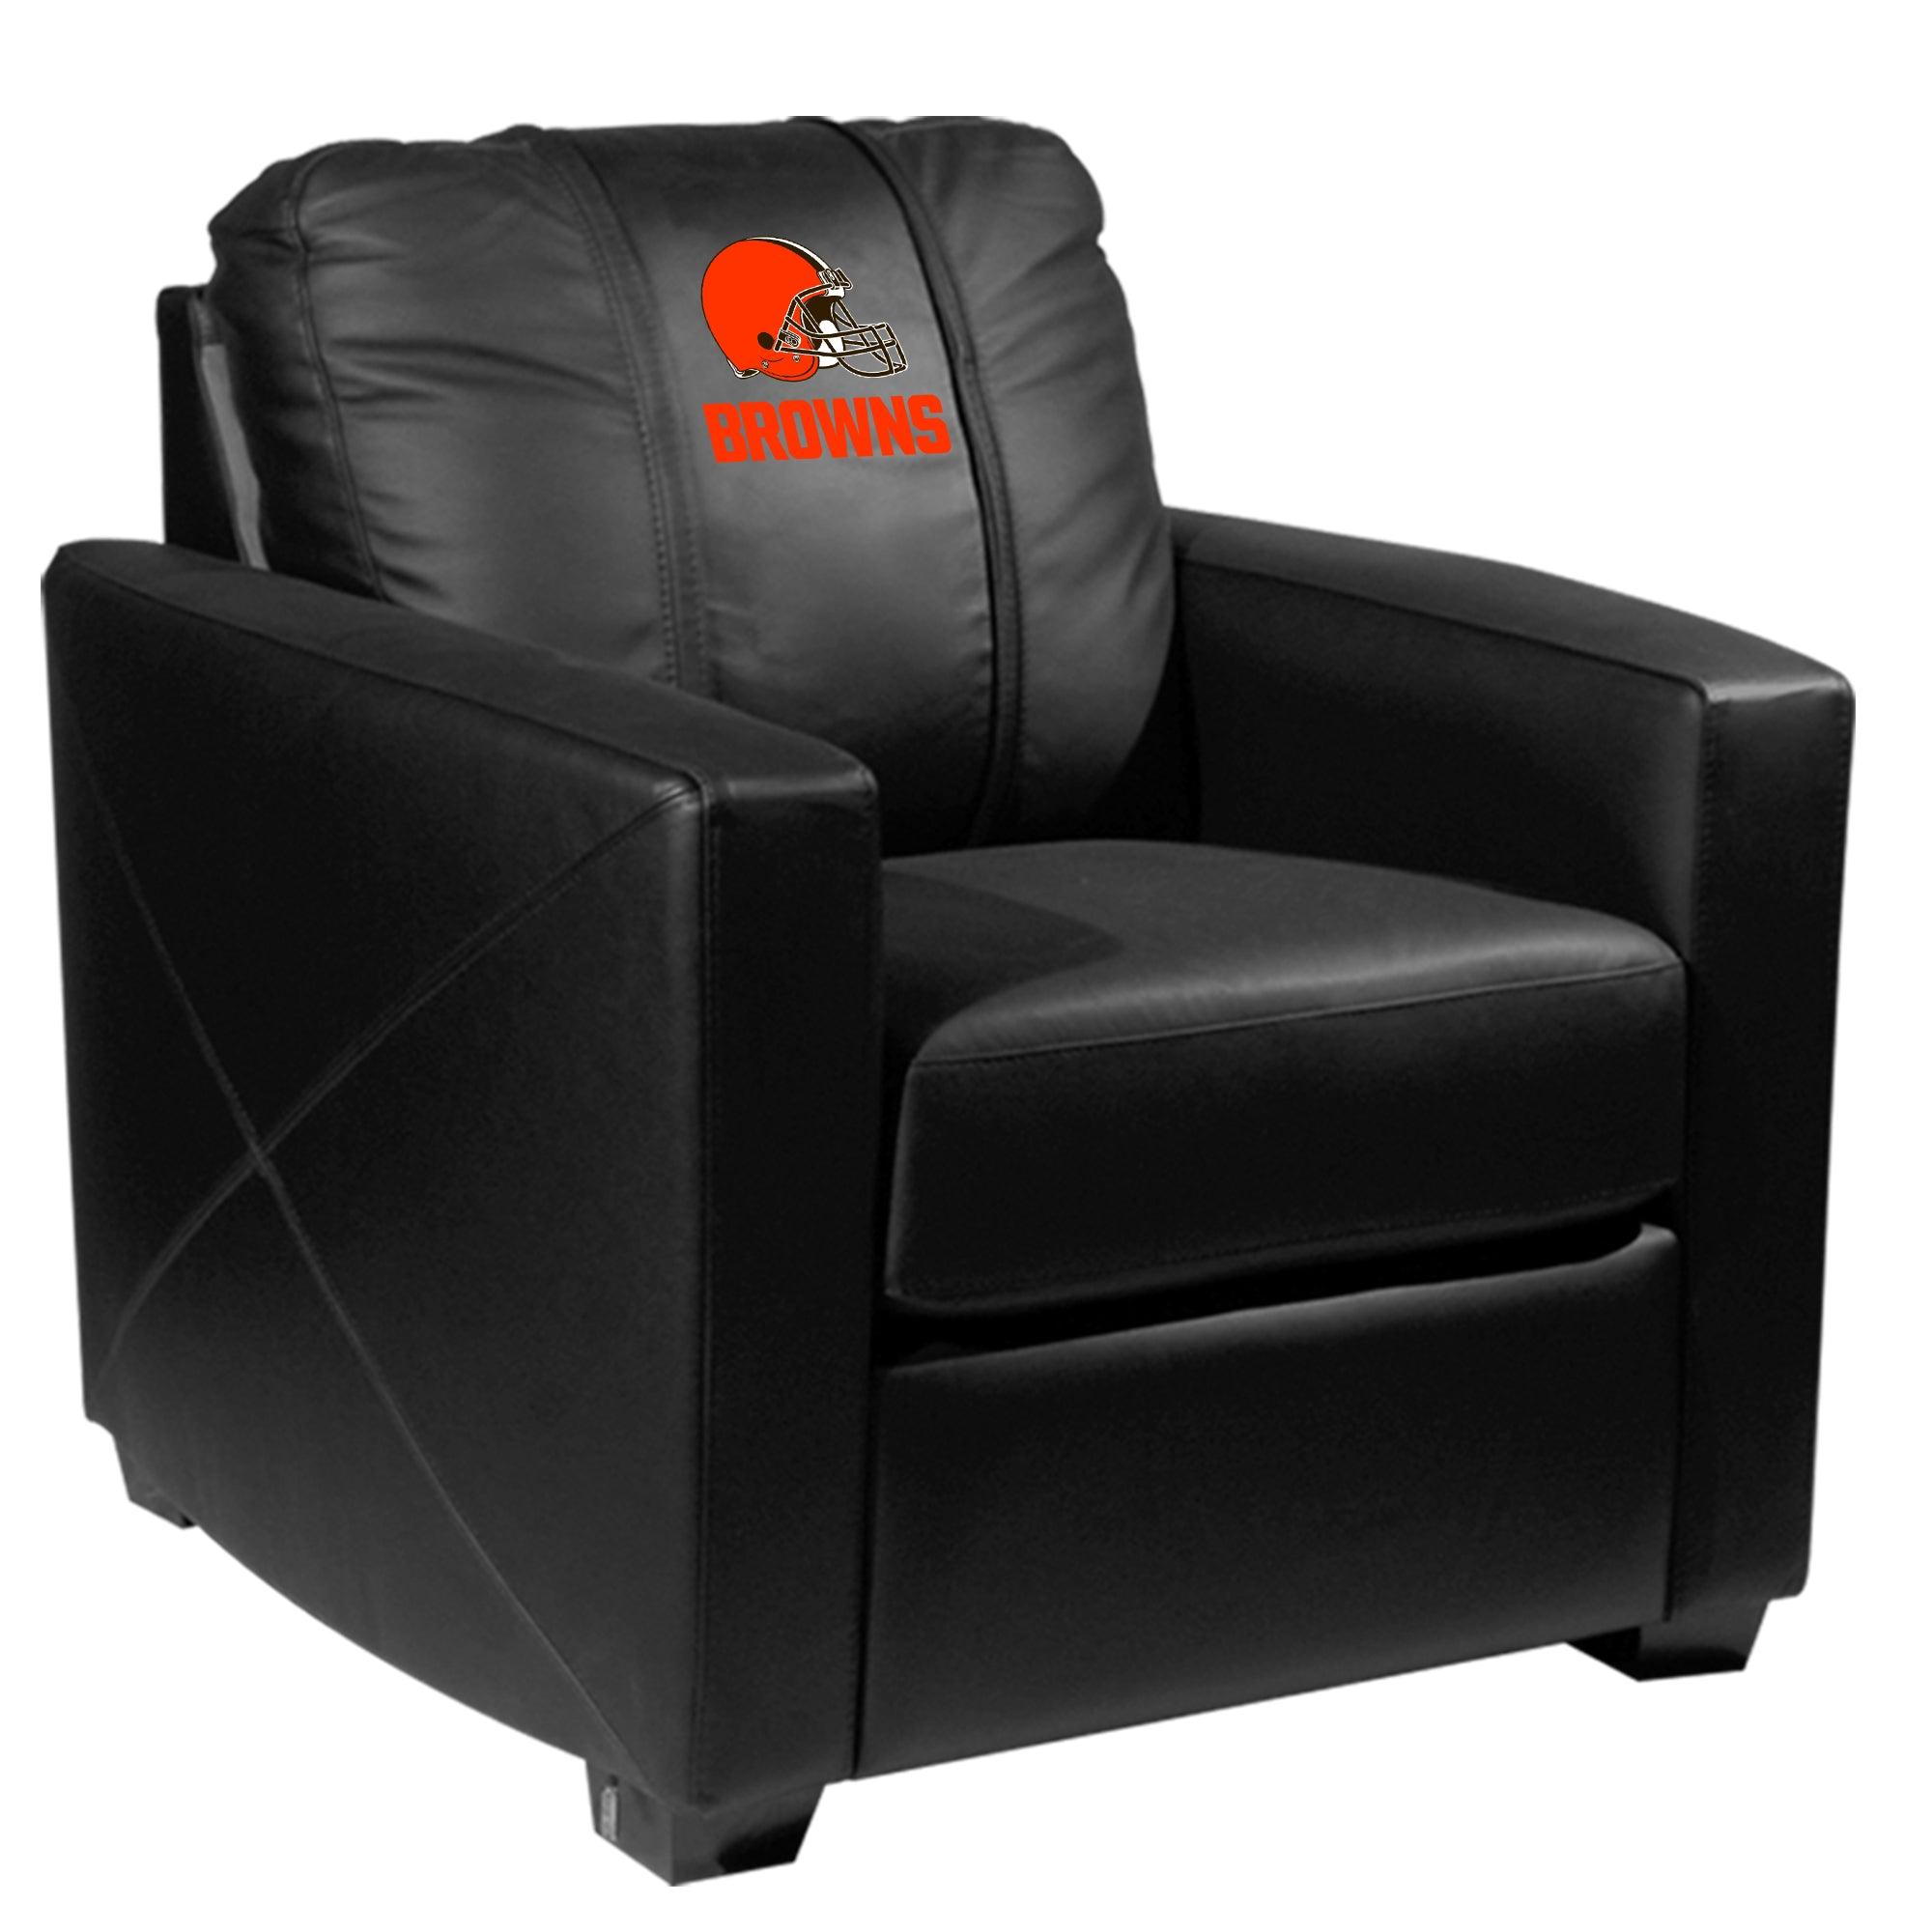 Silver Club Chair with  Cleveland Browns Secondary Logo